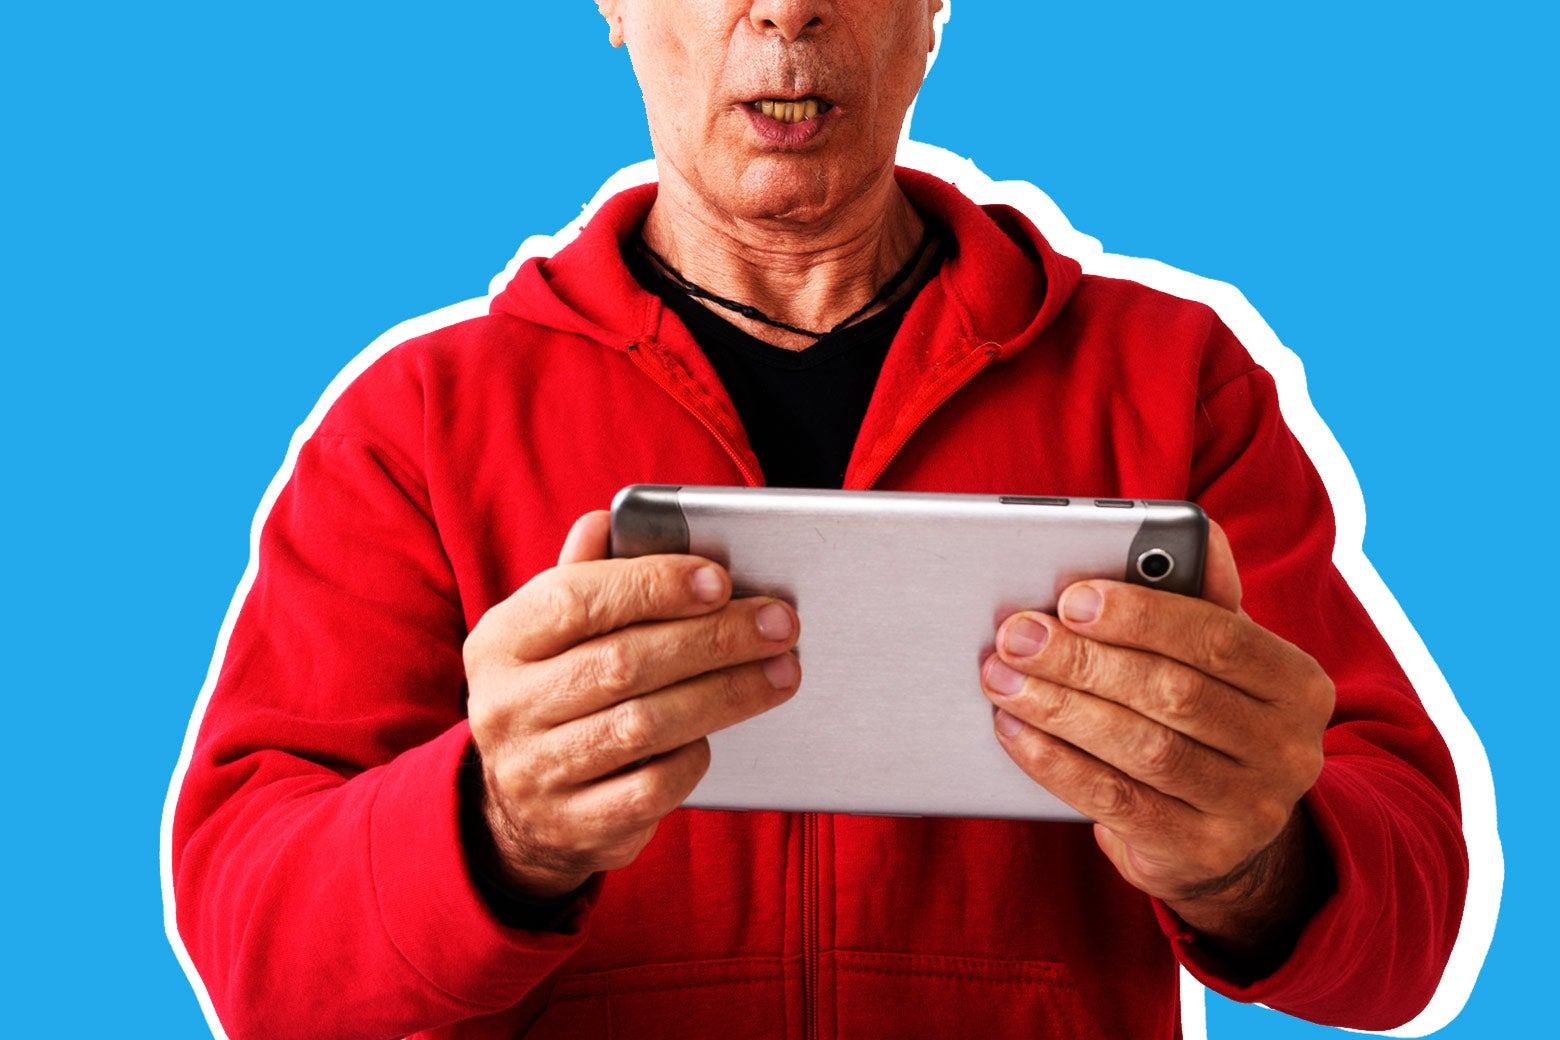 Photo illustration: A man holds a tablet.